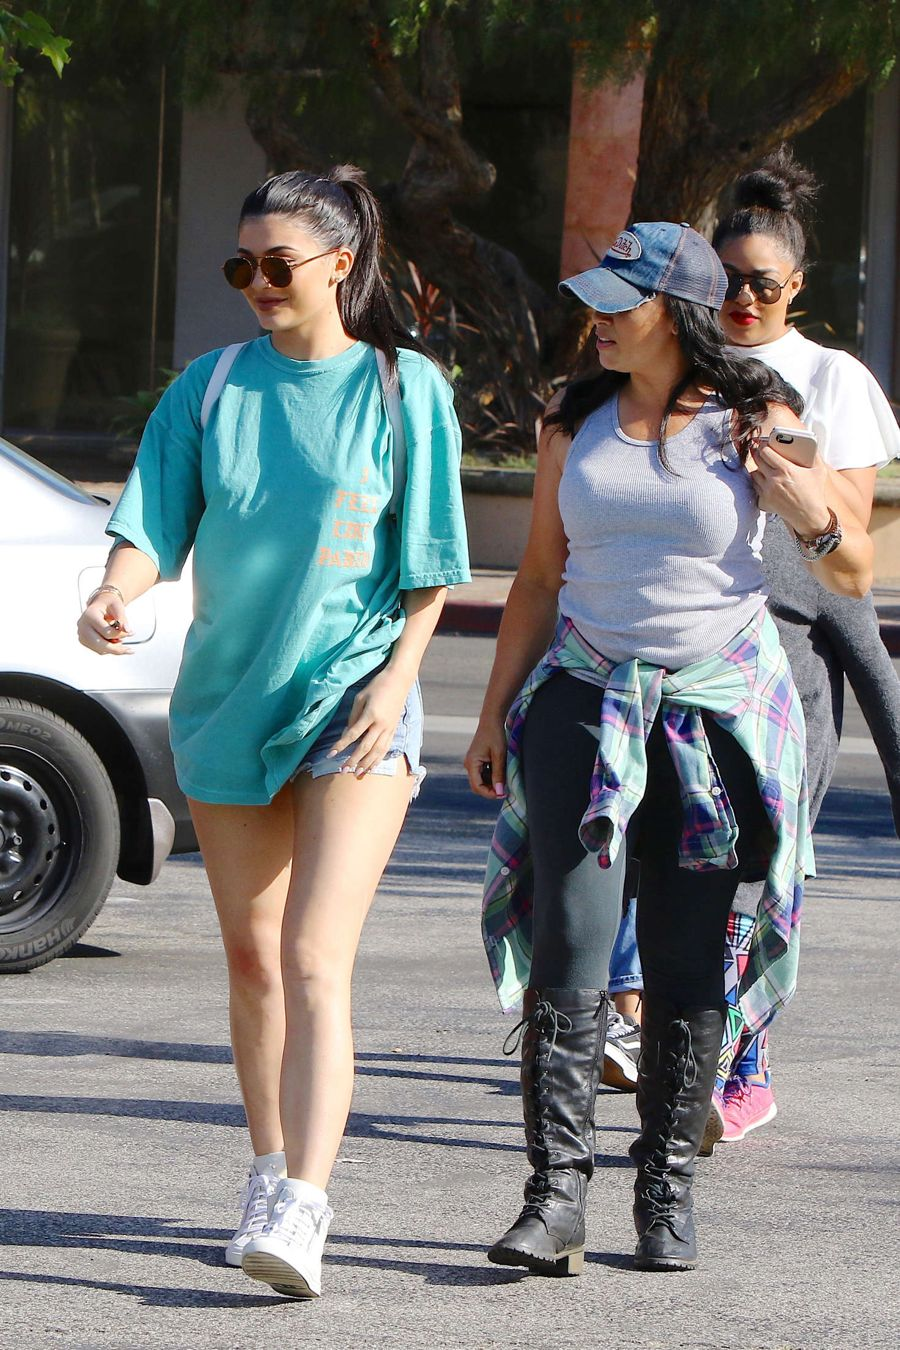 Kylie Jenner in Jeans Shorts at Bui Sushi in Malibu